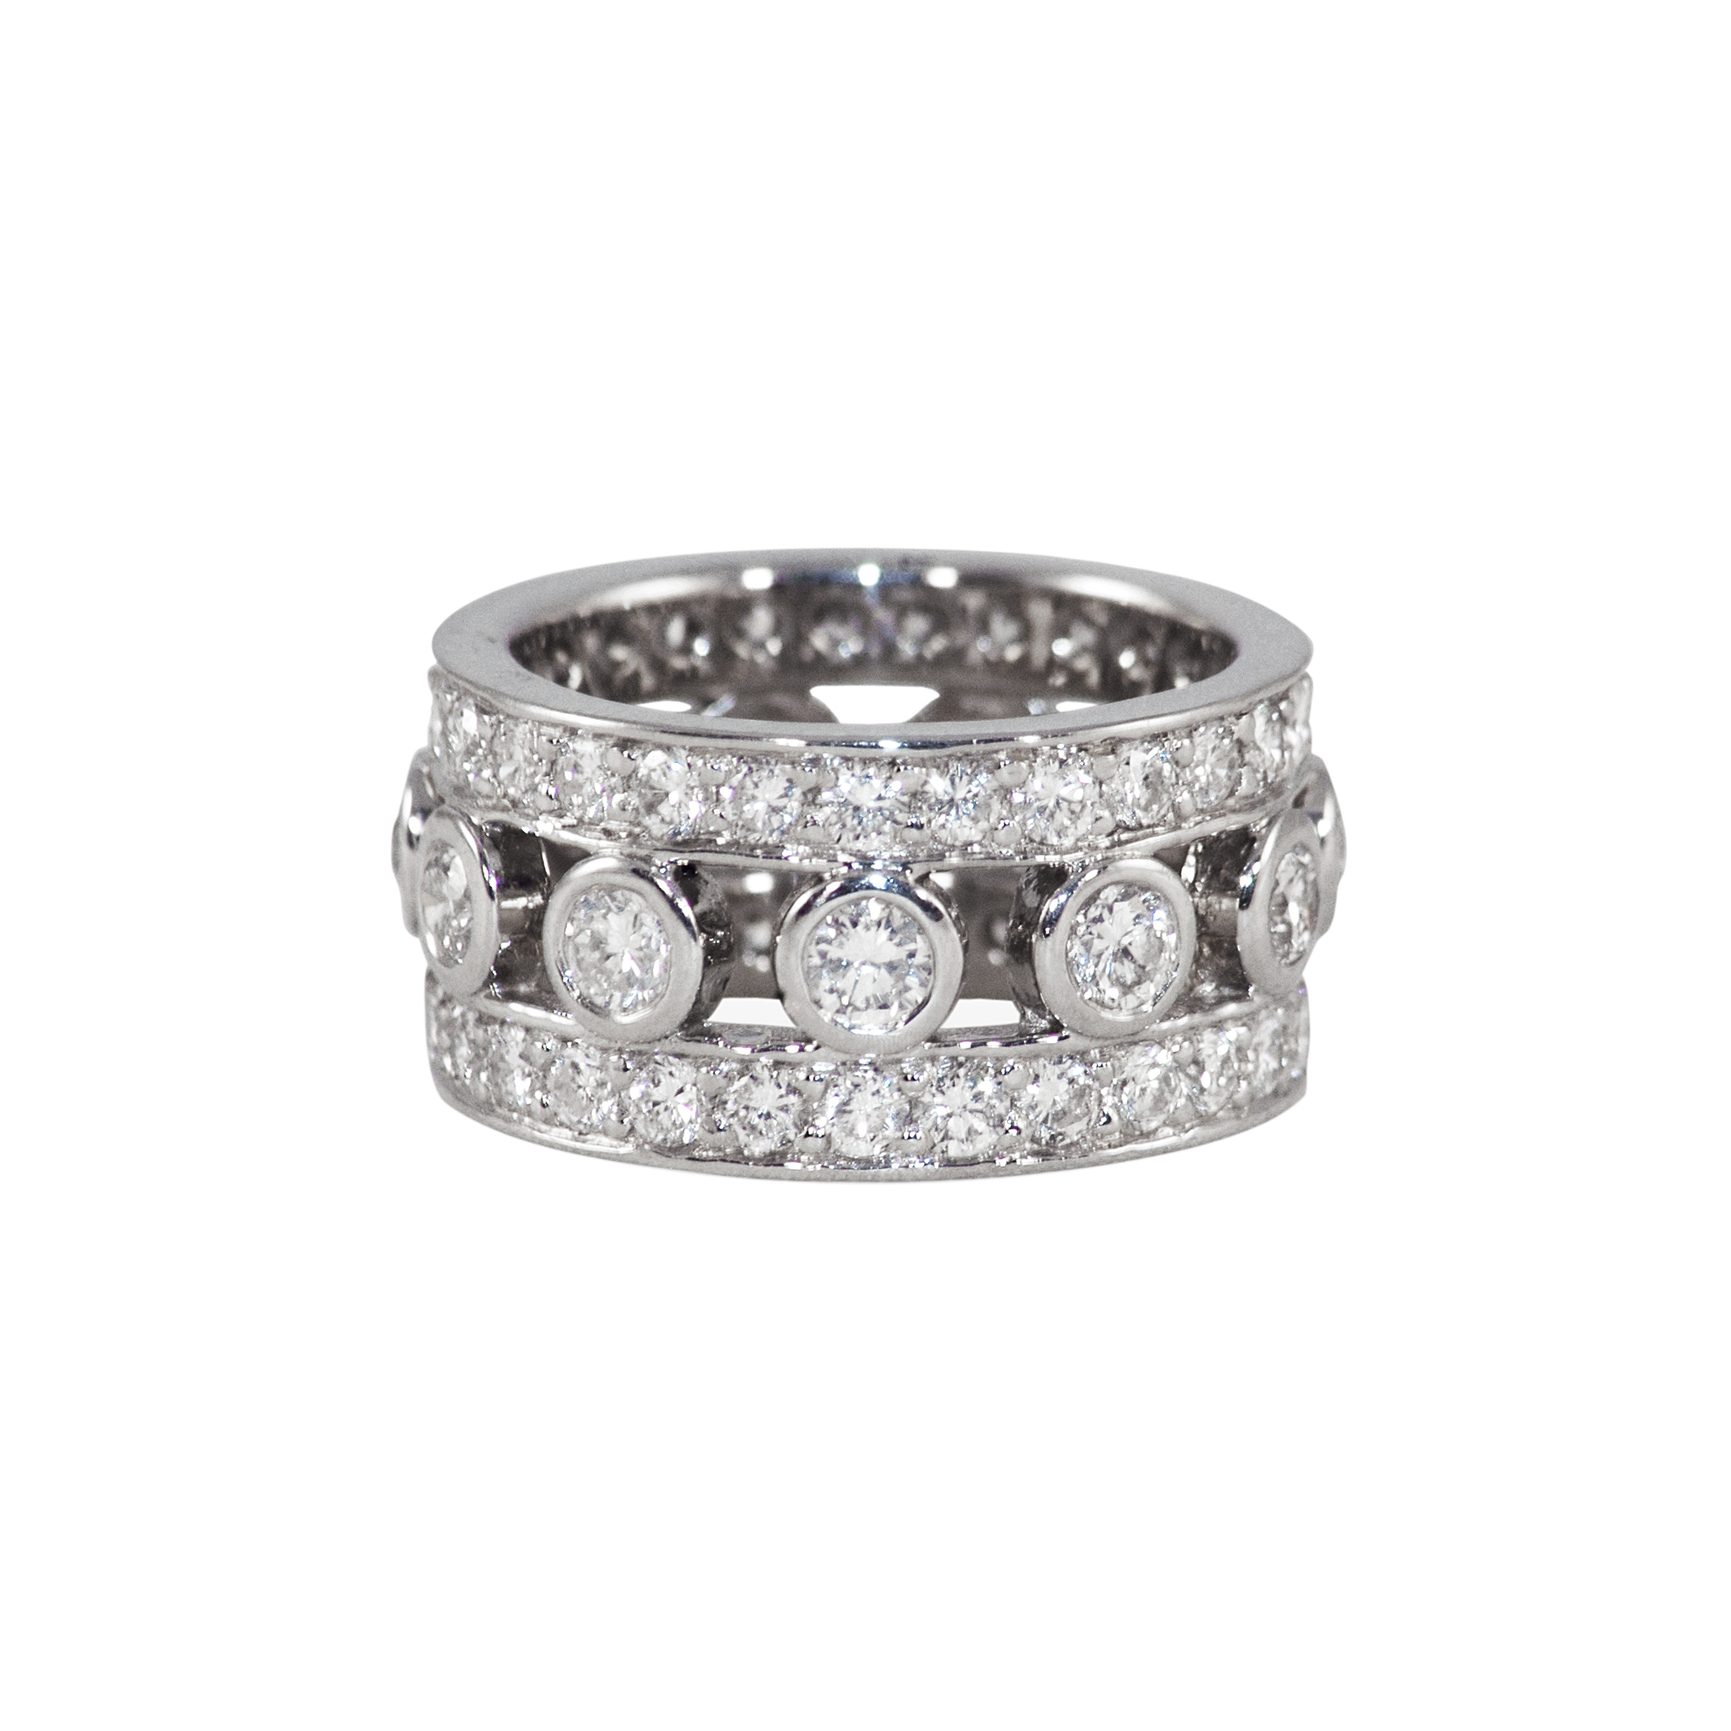 Once Loved, Loved again    Platinum & Diamond Band         Designed with diamonds from customer's wedding bands